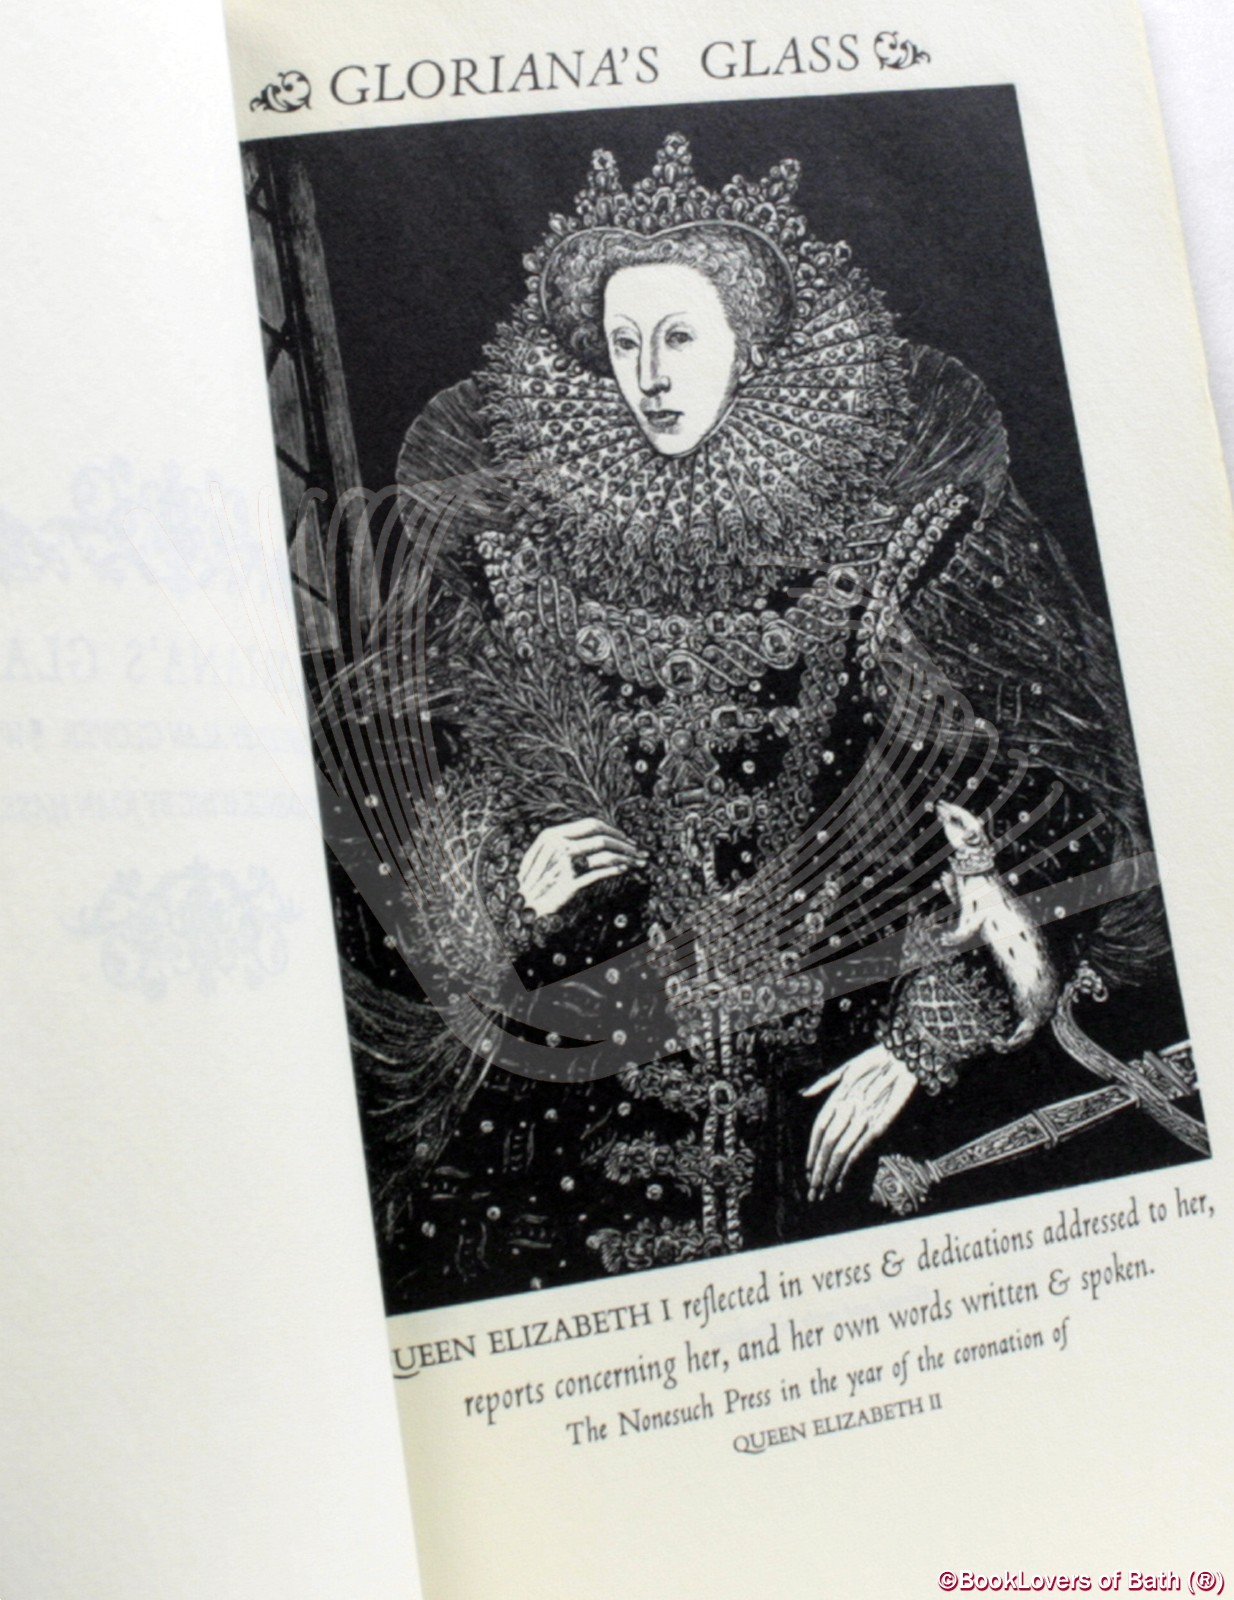 Gloriana's Glass: Queen Elizabeth I Reflected in Verses & Dedicat